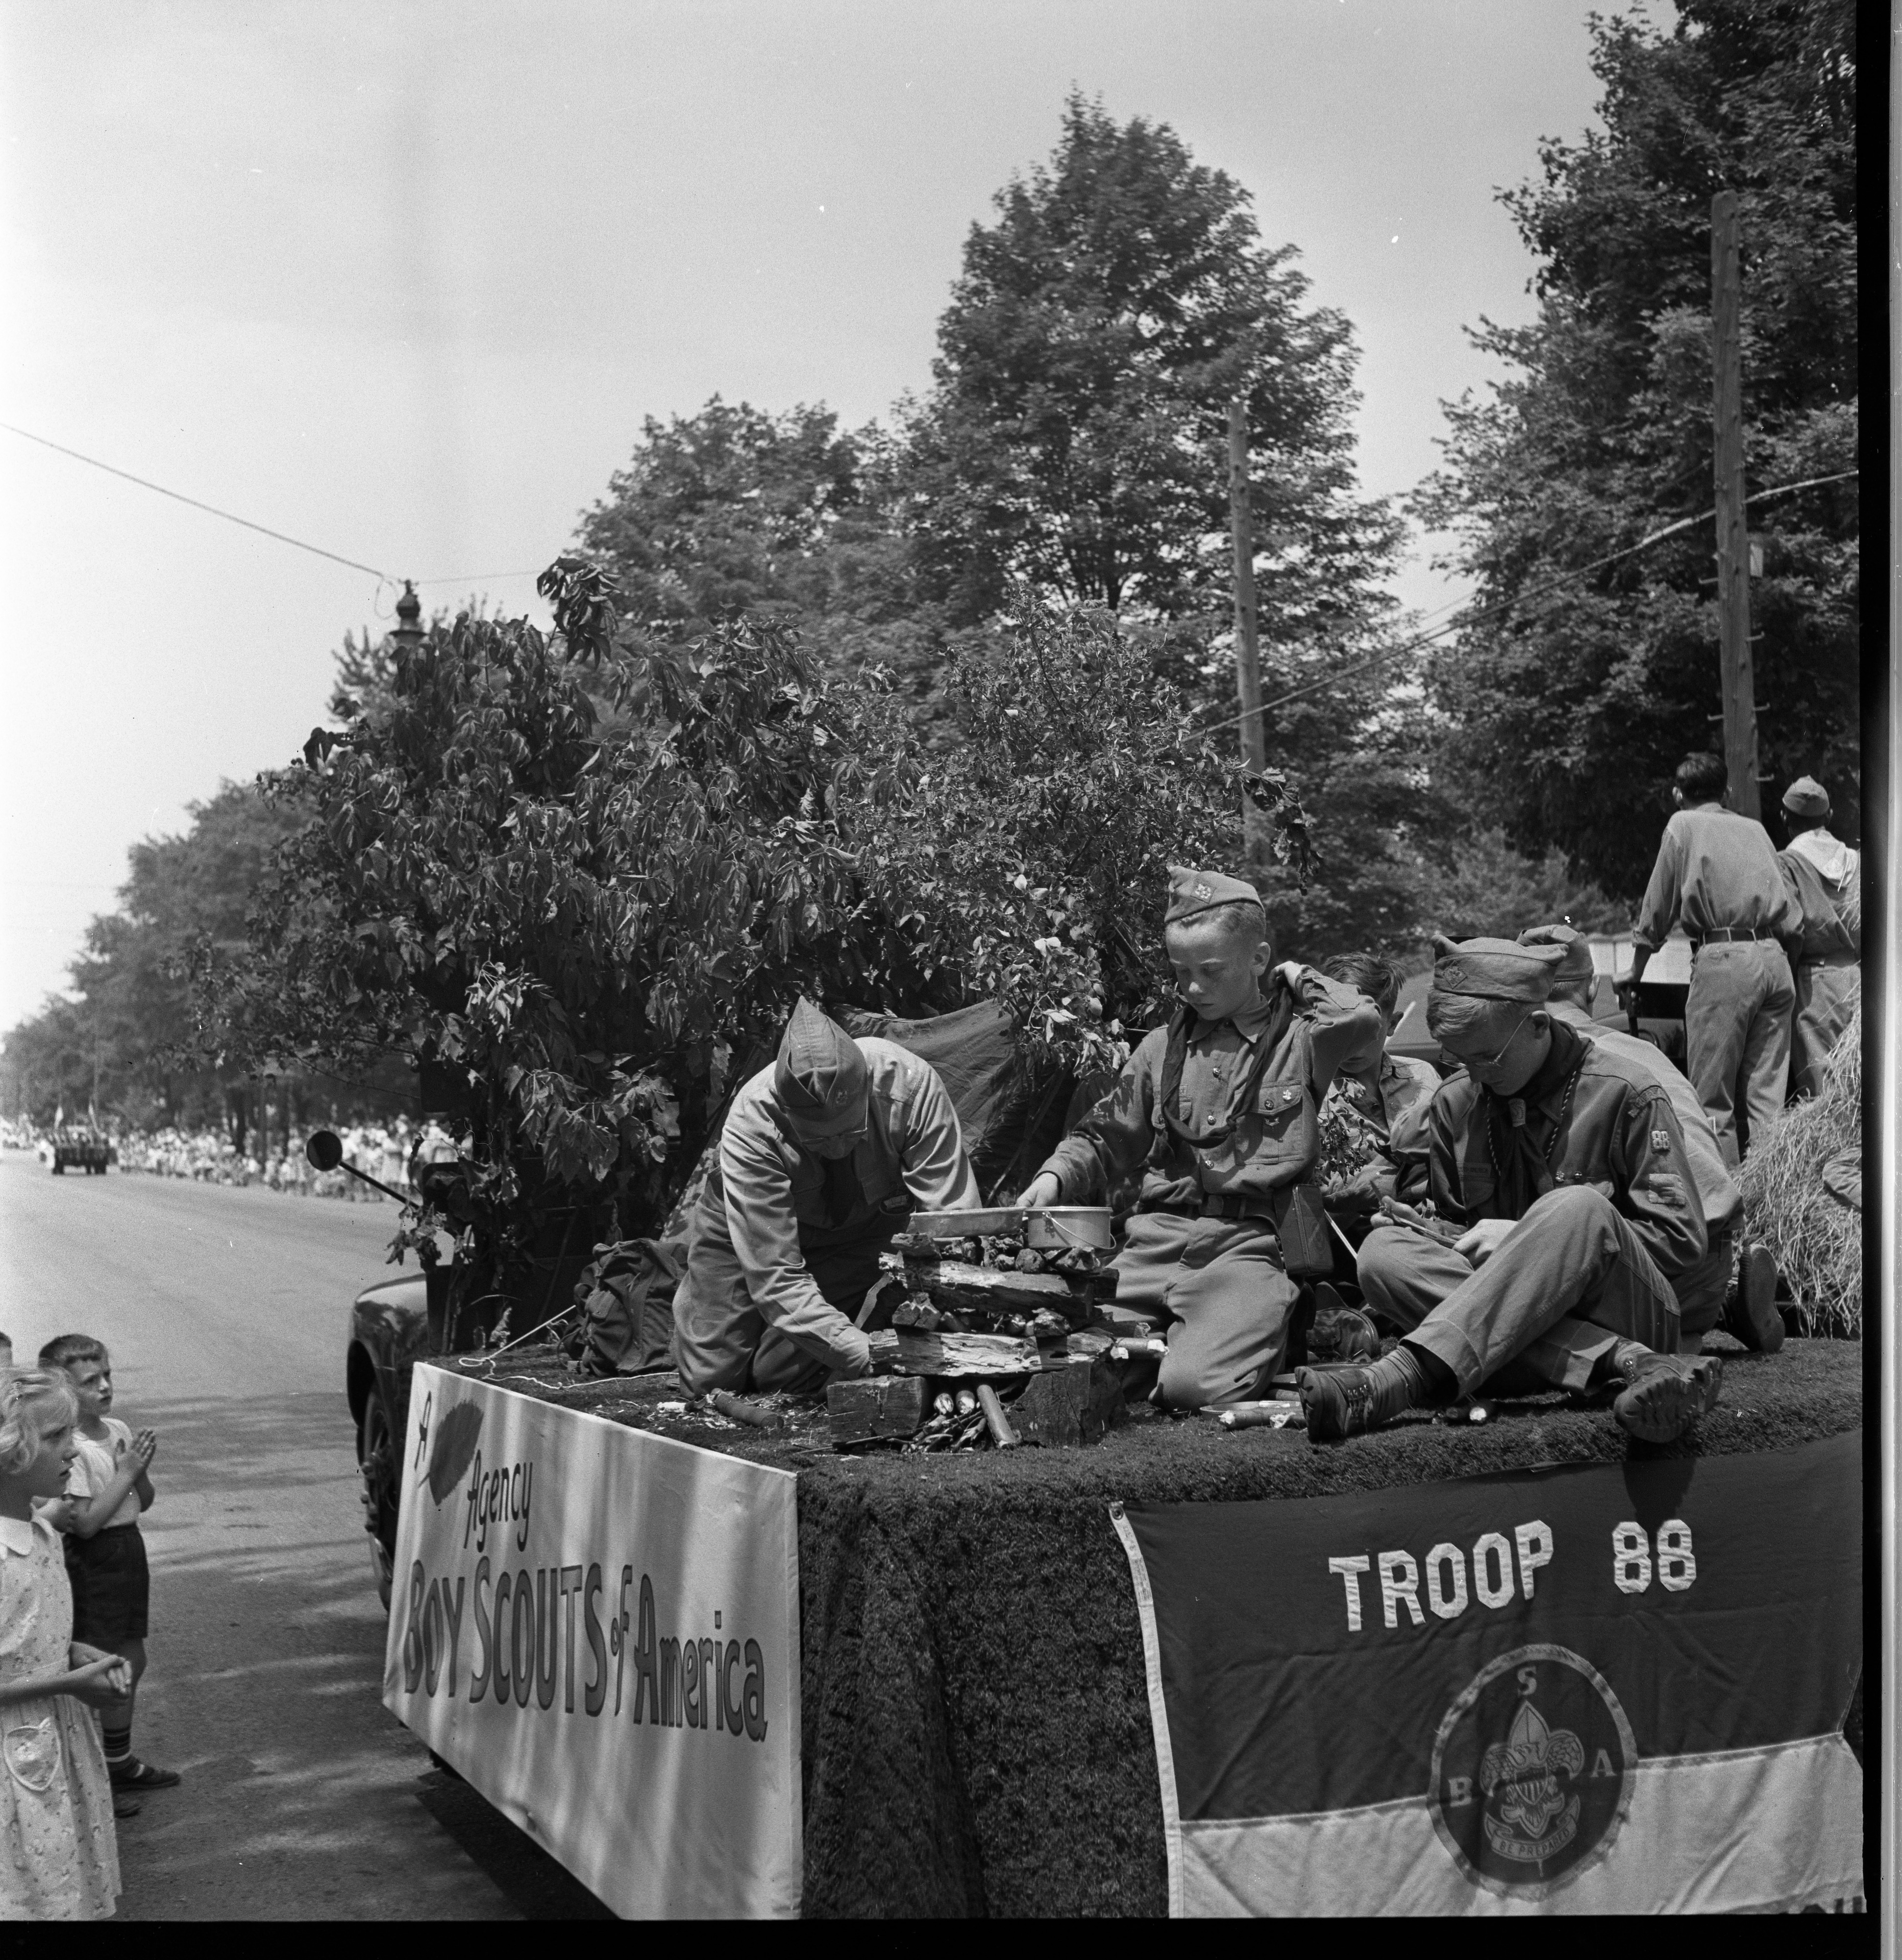 Boy Scouts Of America, Troop 88, On Float In The Ypsilanti Fourth Of July Parade, July 1949 image